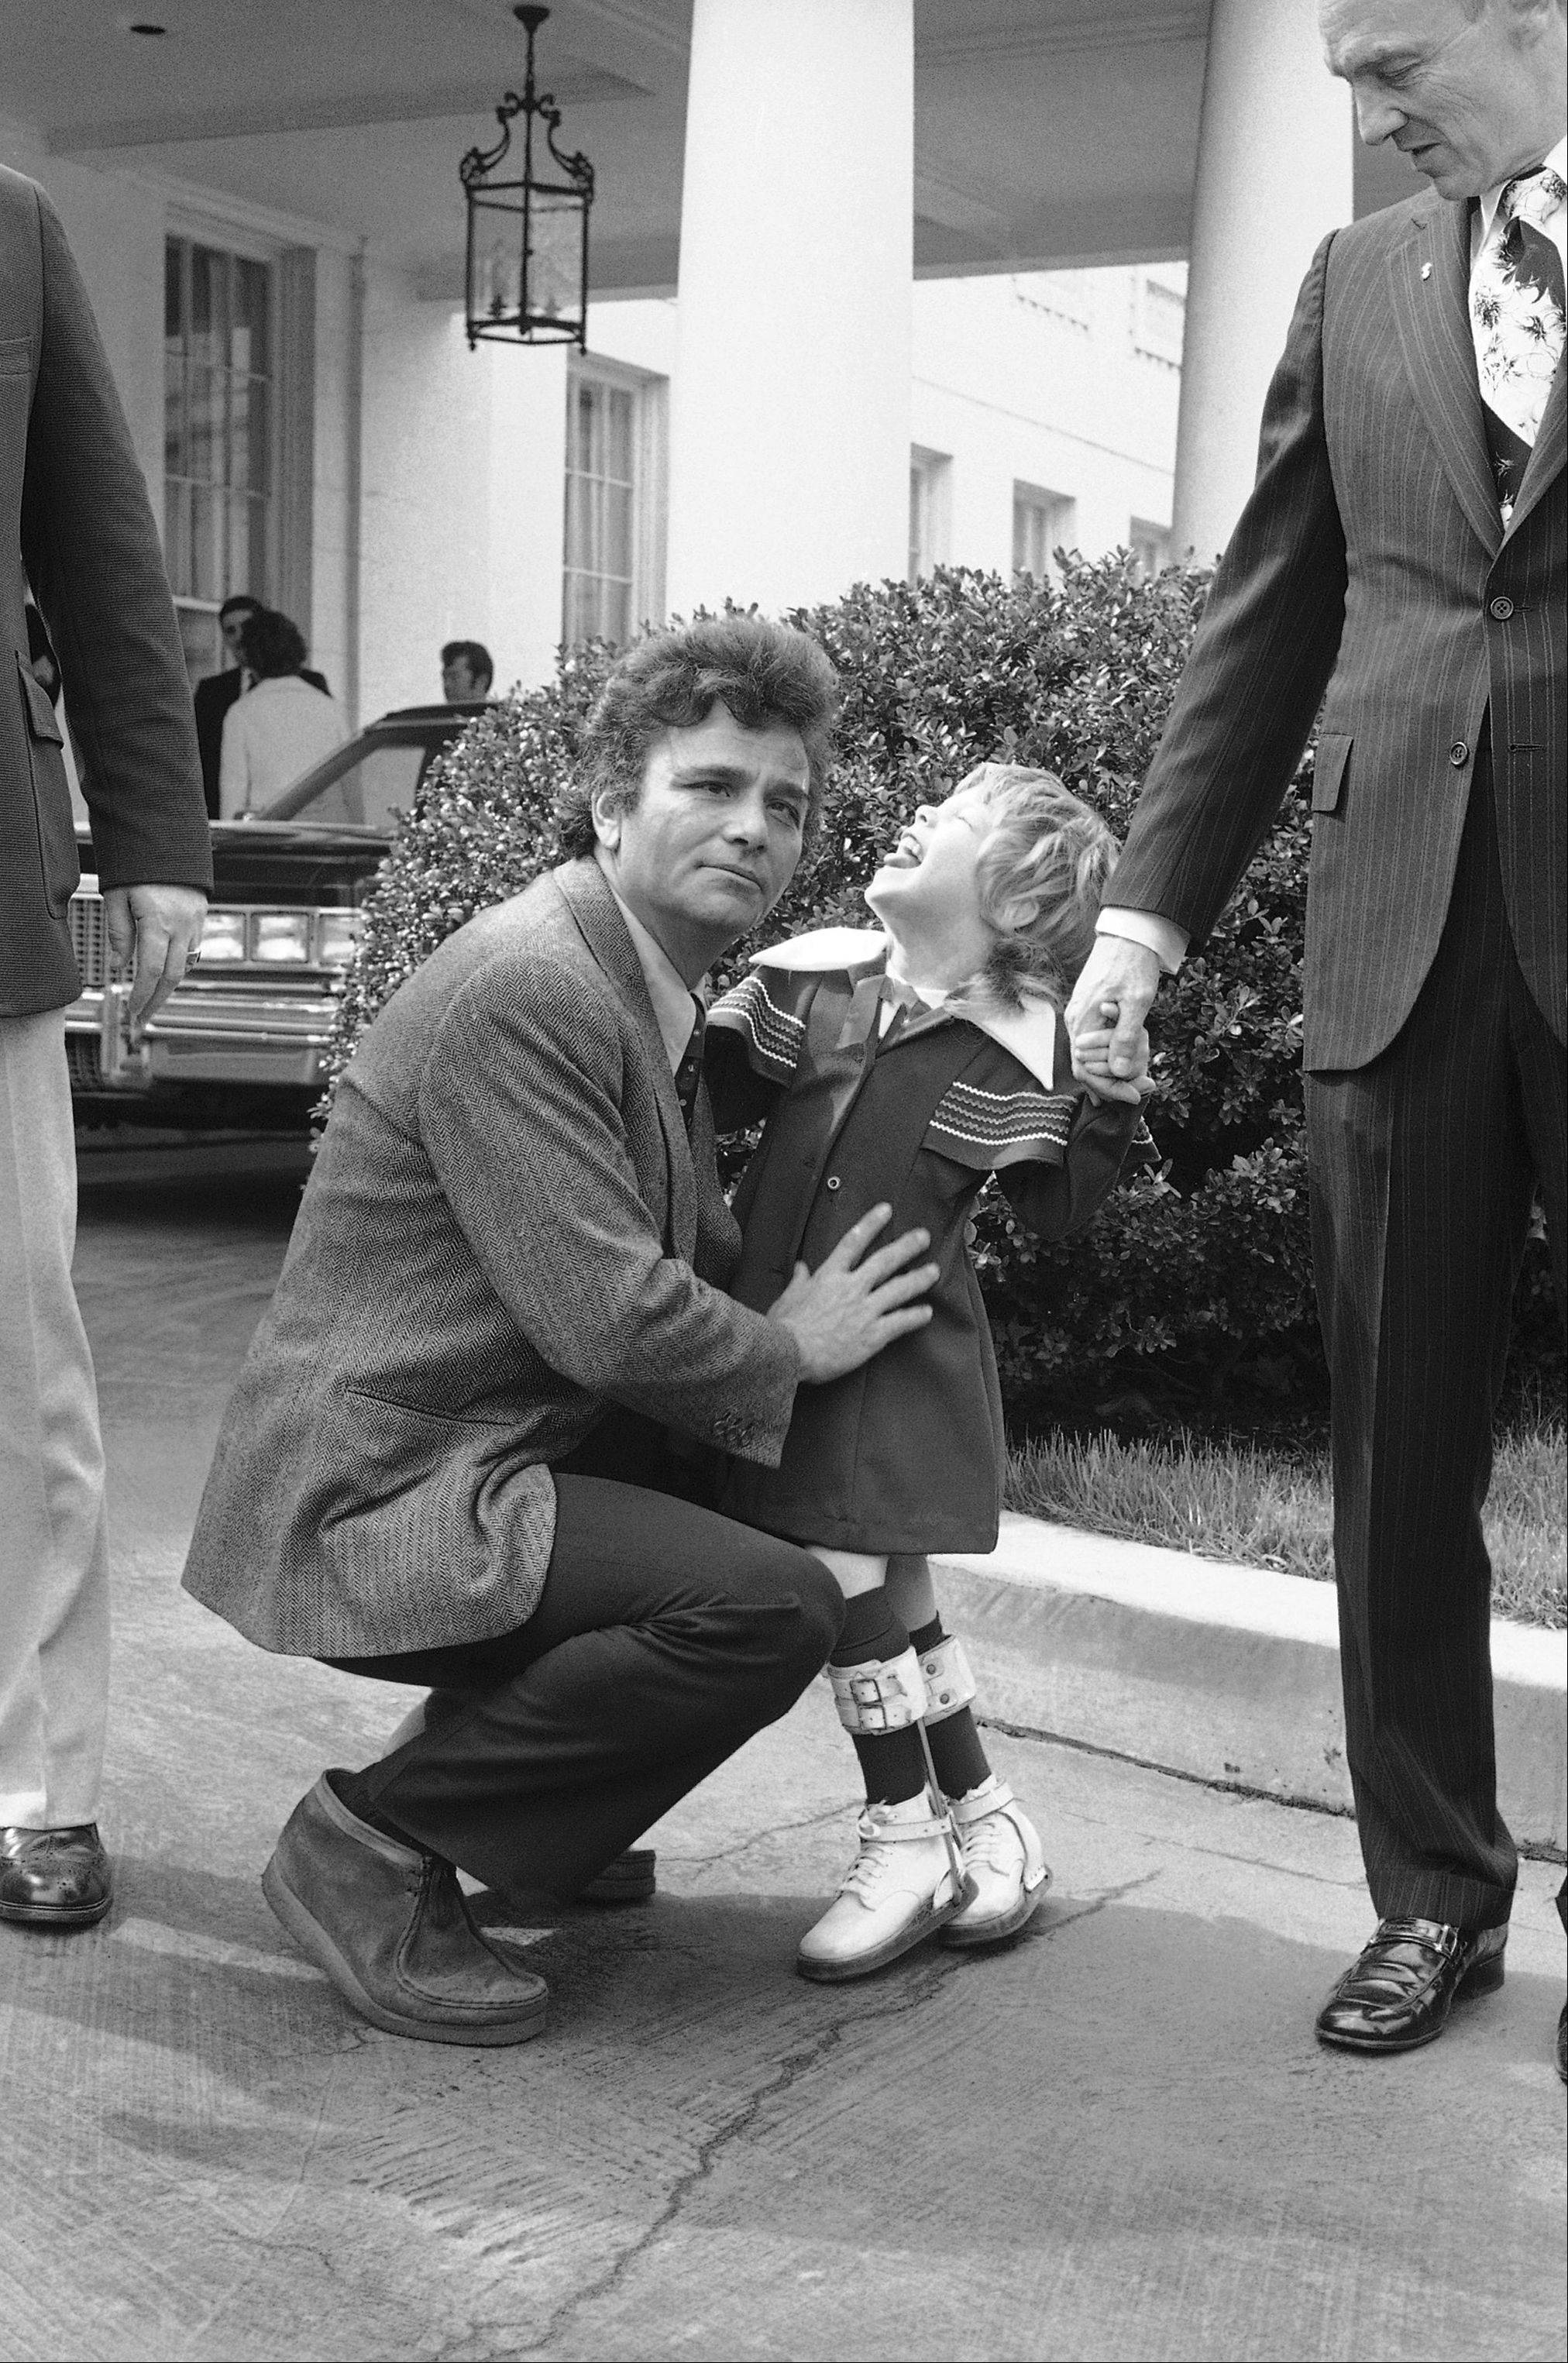 Actor Peter Falk gets a slight rebuff, left, and then permission for a kiss from Pamela Jo Baker, 5, of Wellsburg, W.Va., the 1975 Easter Seal Poster Child, outside the White House on Thursday, March 14, 1975 in Washington after they payed a call as President Gerald Ford.